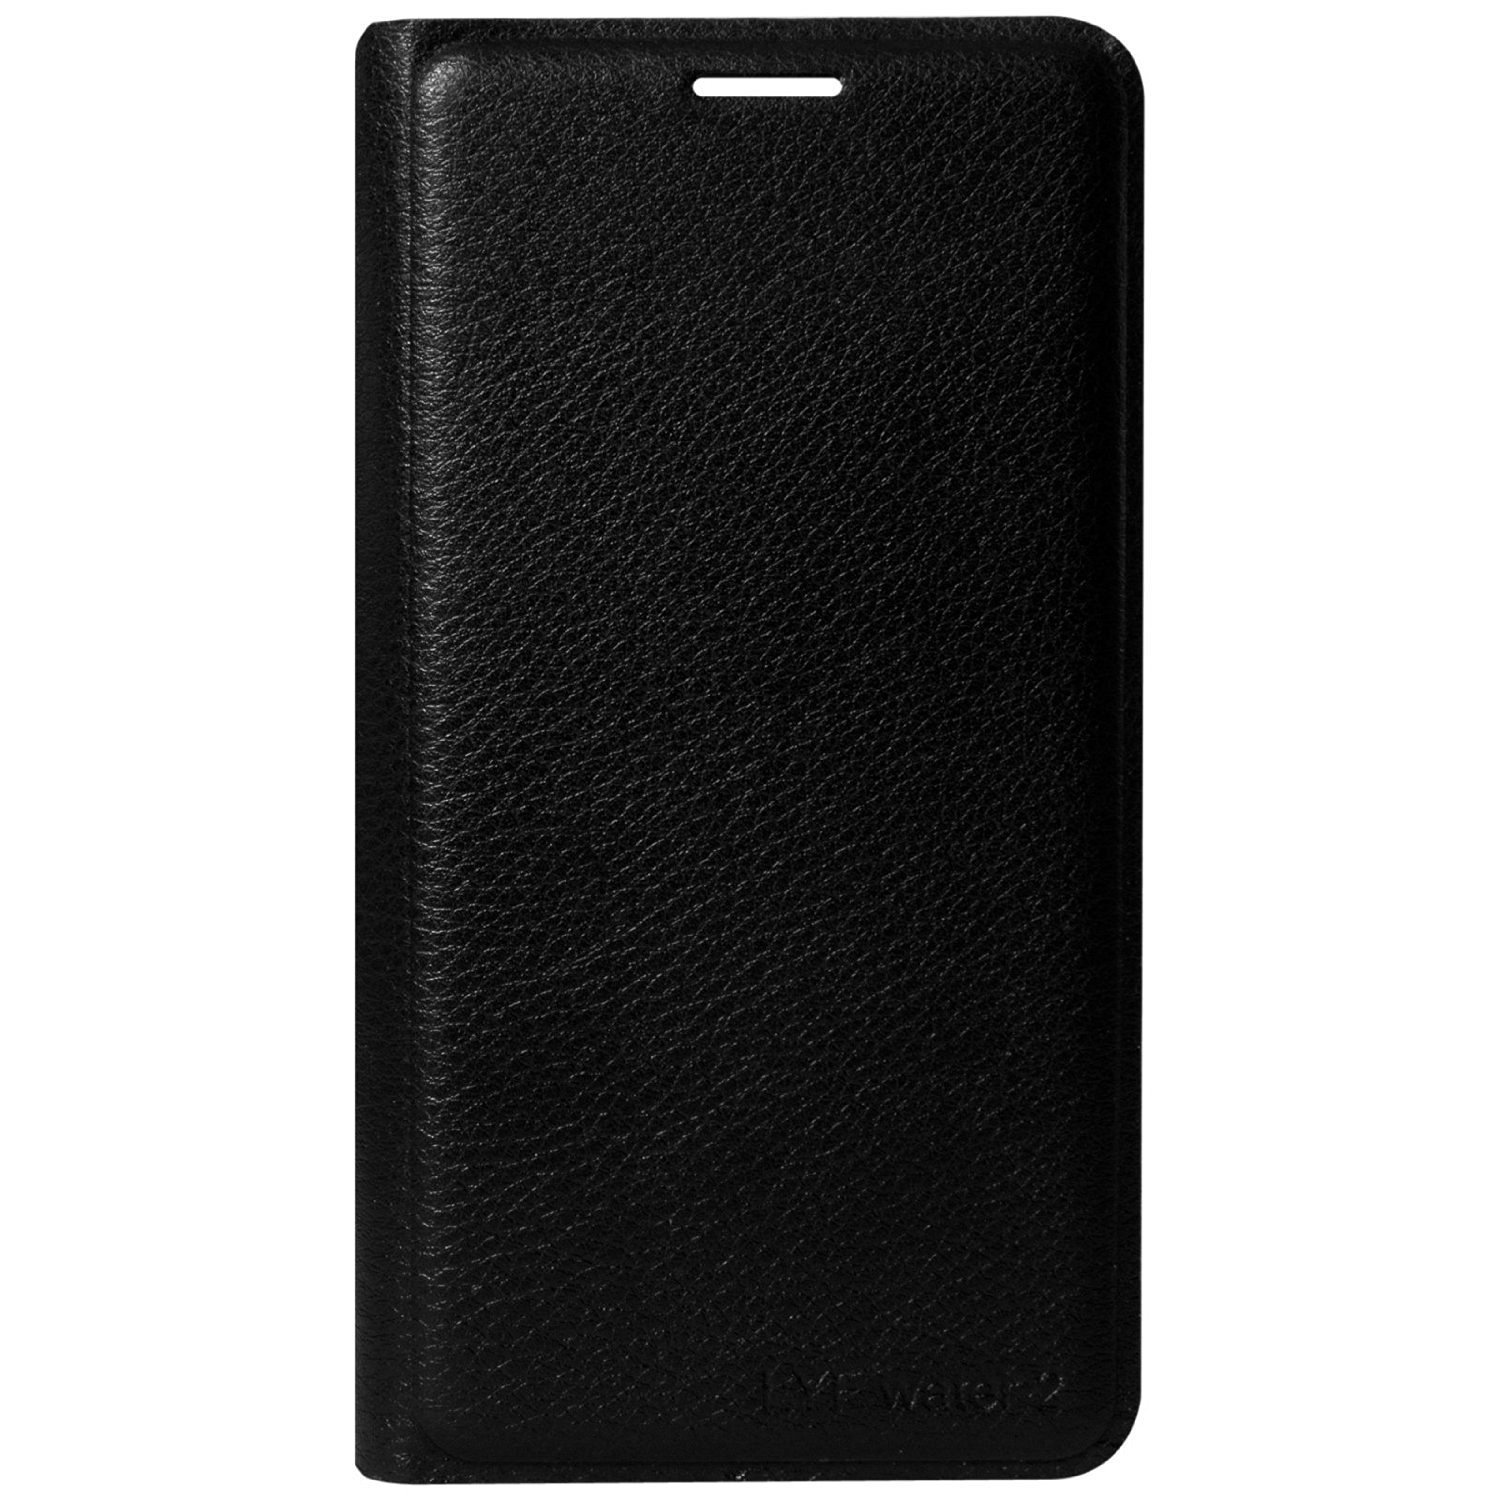 new concept d386d b3e22 Johra Leather Black Flip Cover Case For Gionee S6 Pro: leather ...